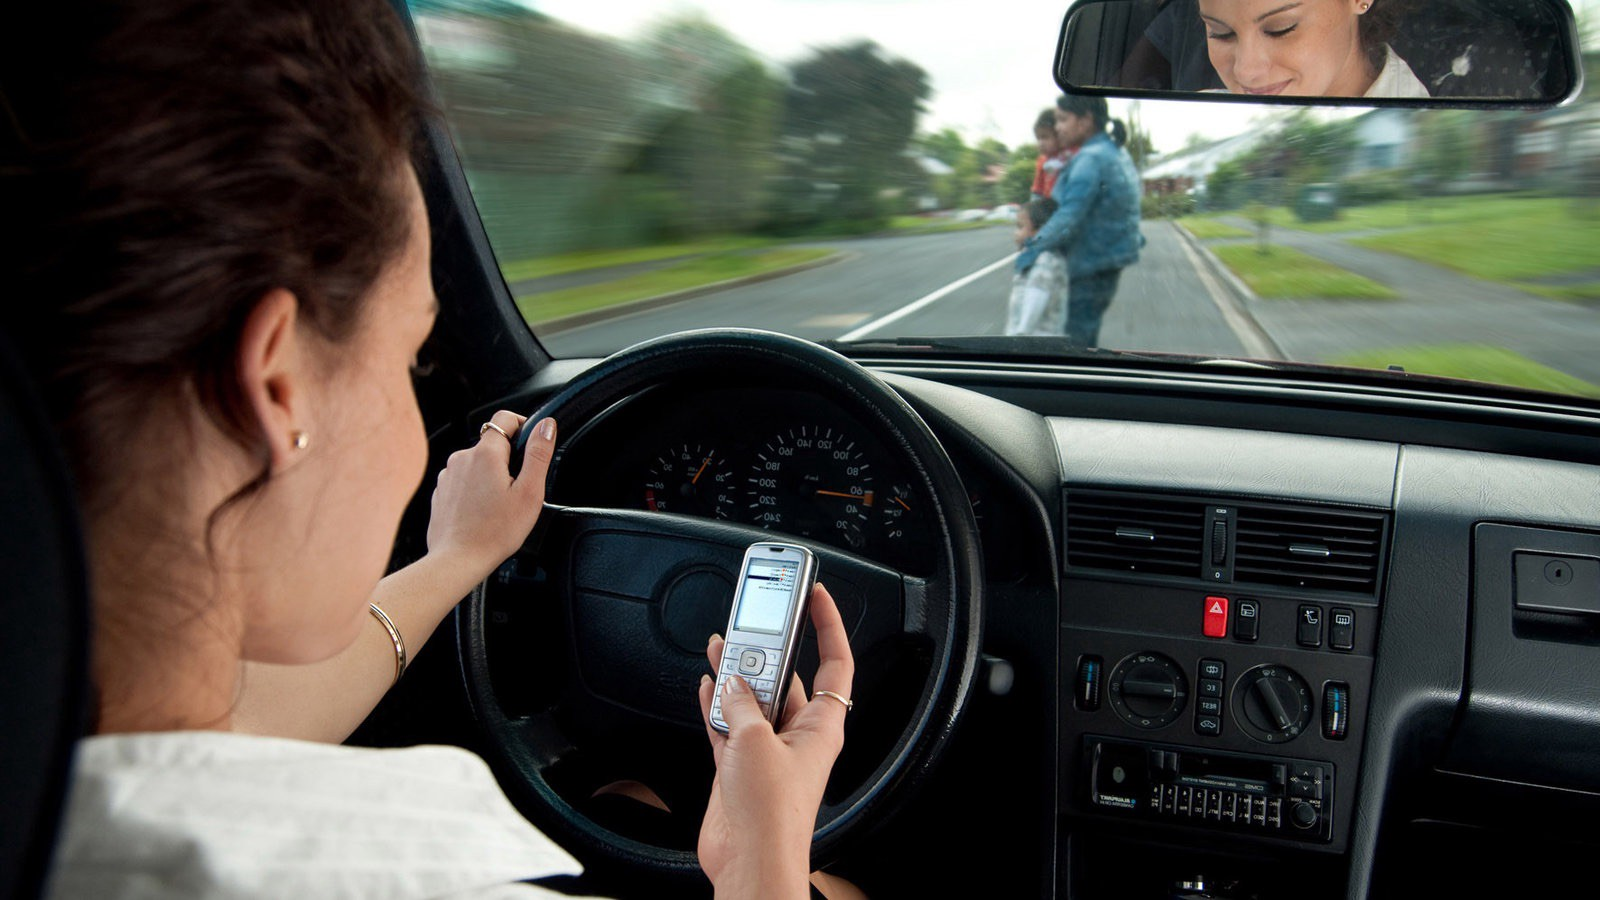 Texting While Driving >> New Study Finds Texting While Driving Only Dangerous If You